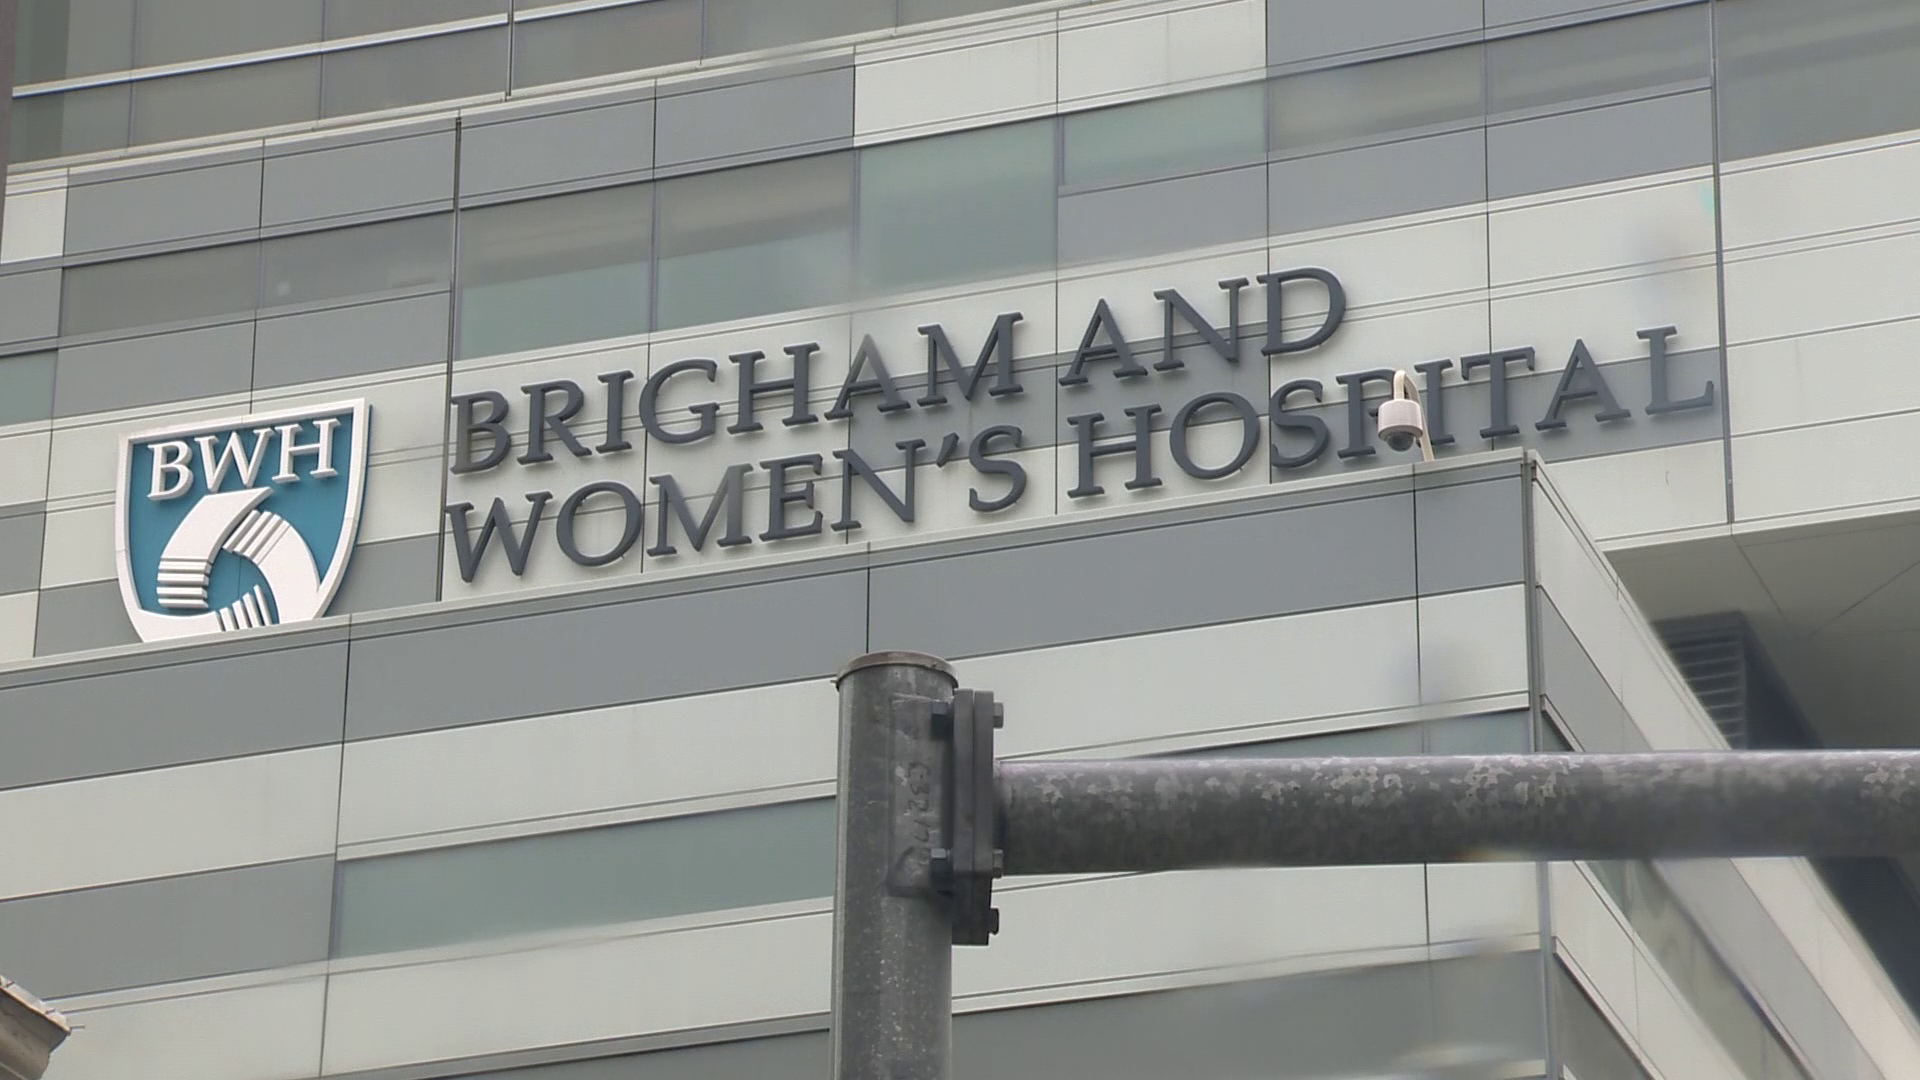 First time in quarter century that Brigham not ranked among top hospitals